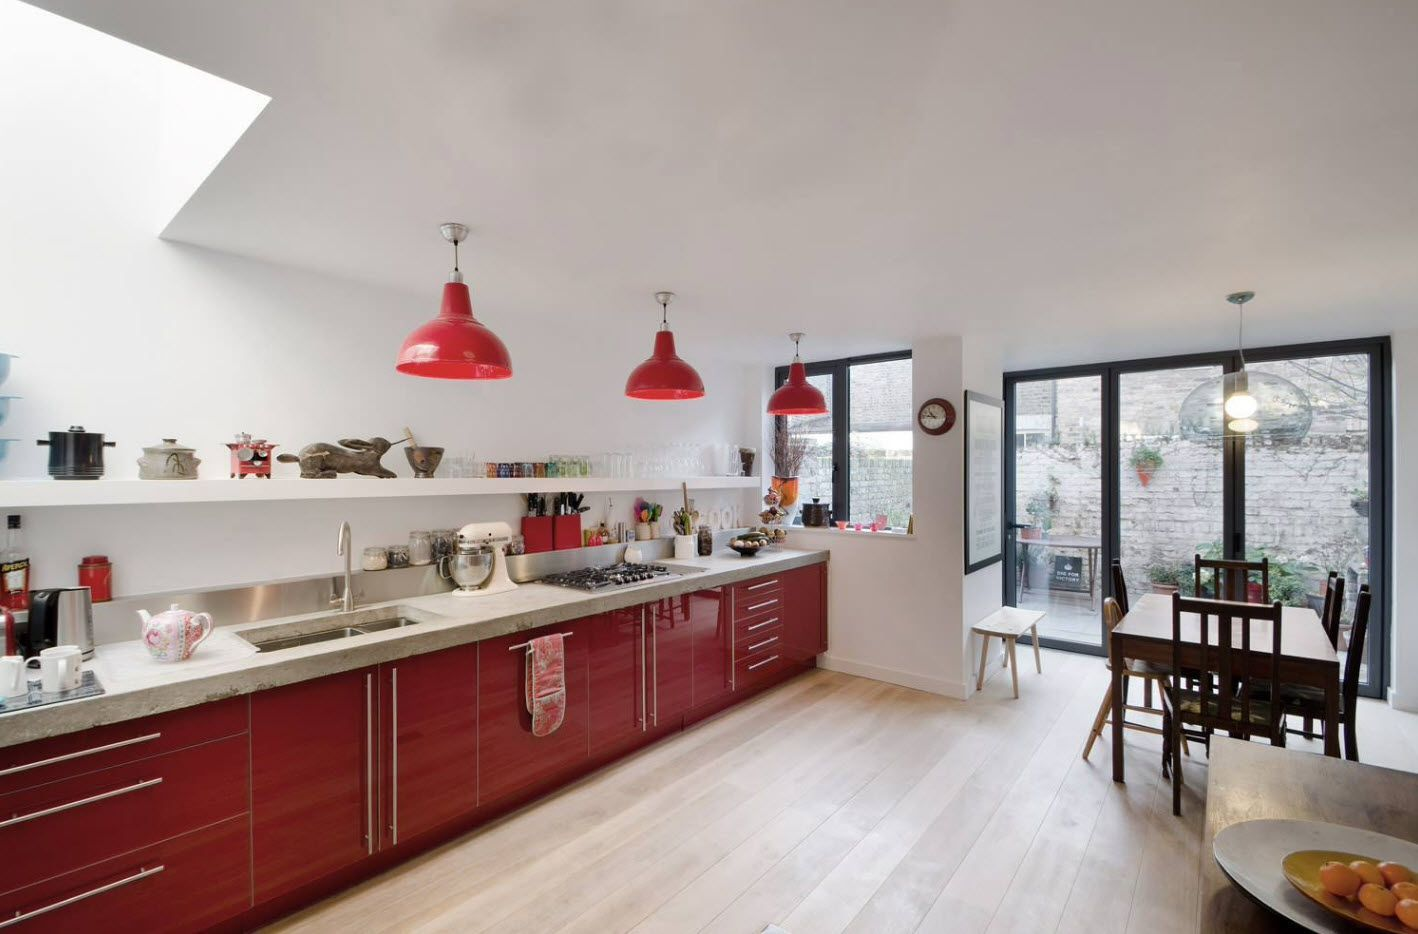 Nice Kitchen Decoration With Red Theme In The Lamp Shades And Island